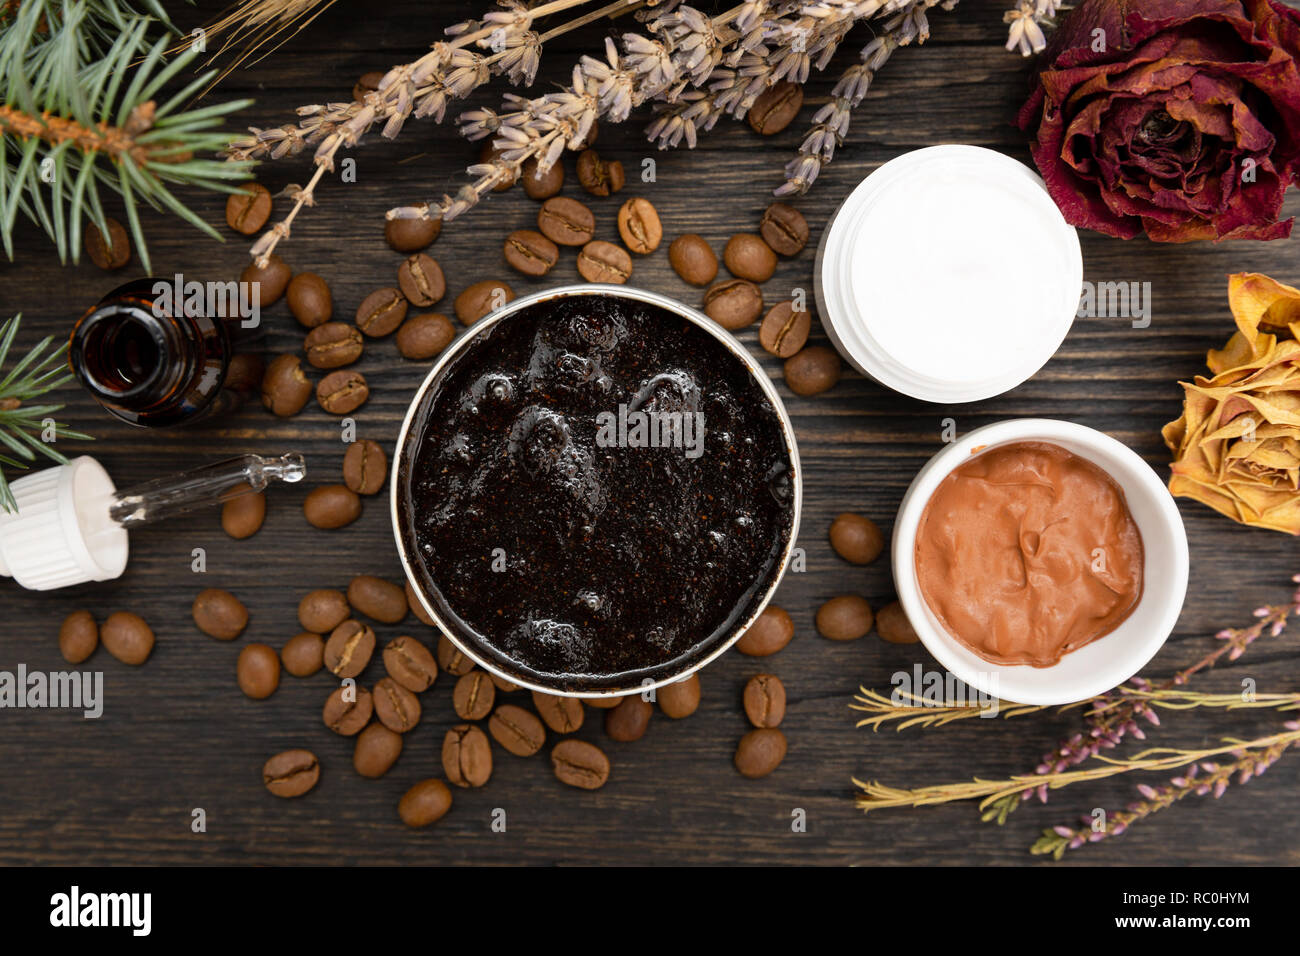 Aromatic botanical cosmetics. Dried herbs flowers mixture, aromatic homemade scrub paste made from coffee grounds and oils. Holistic herbal DIY skinca Stock Photo